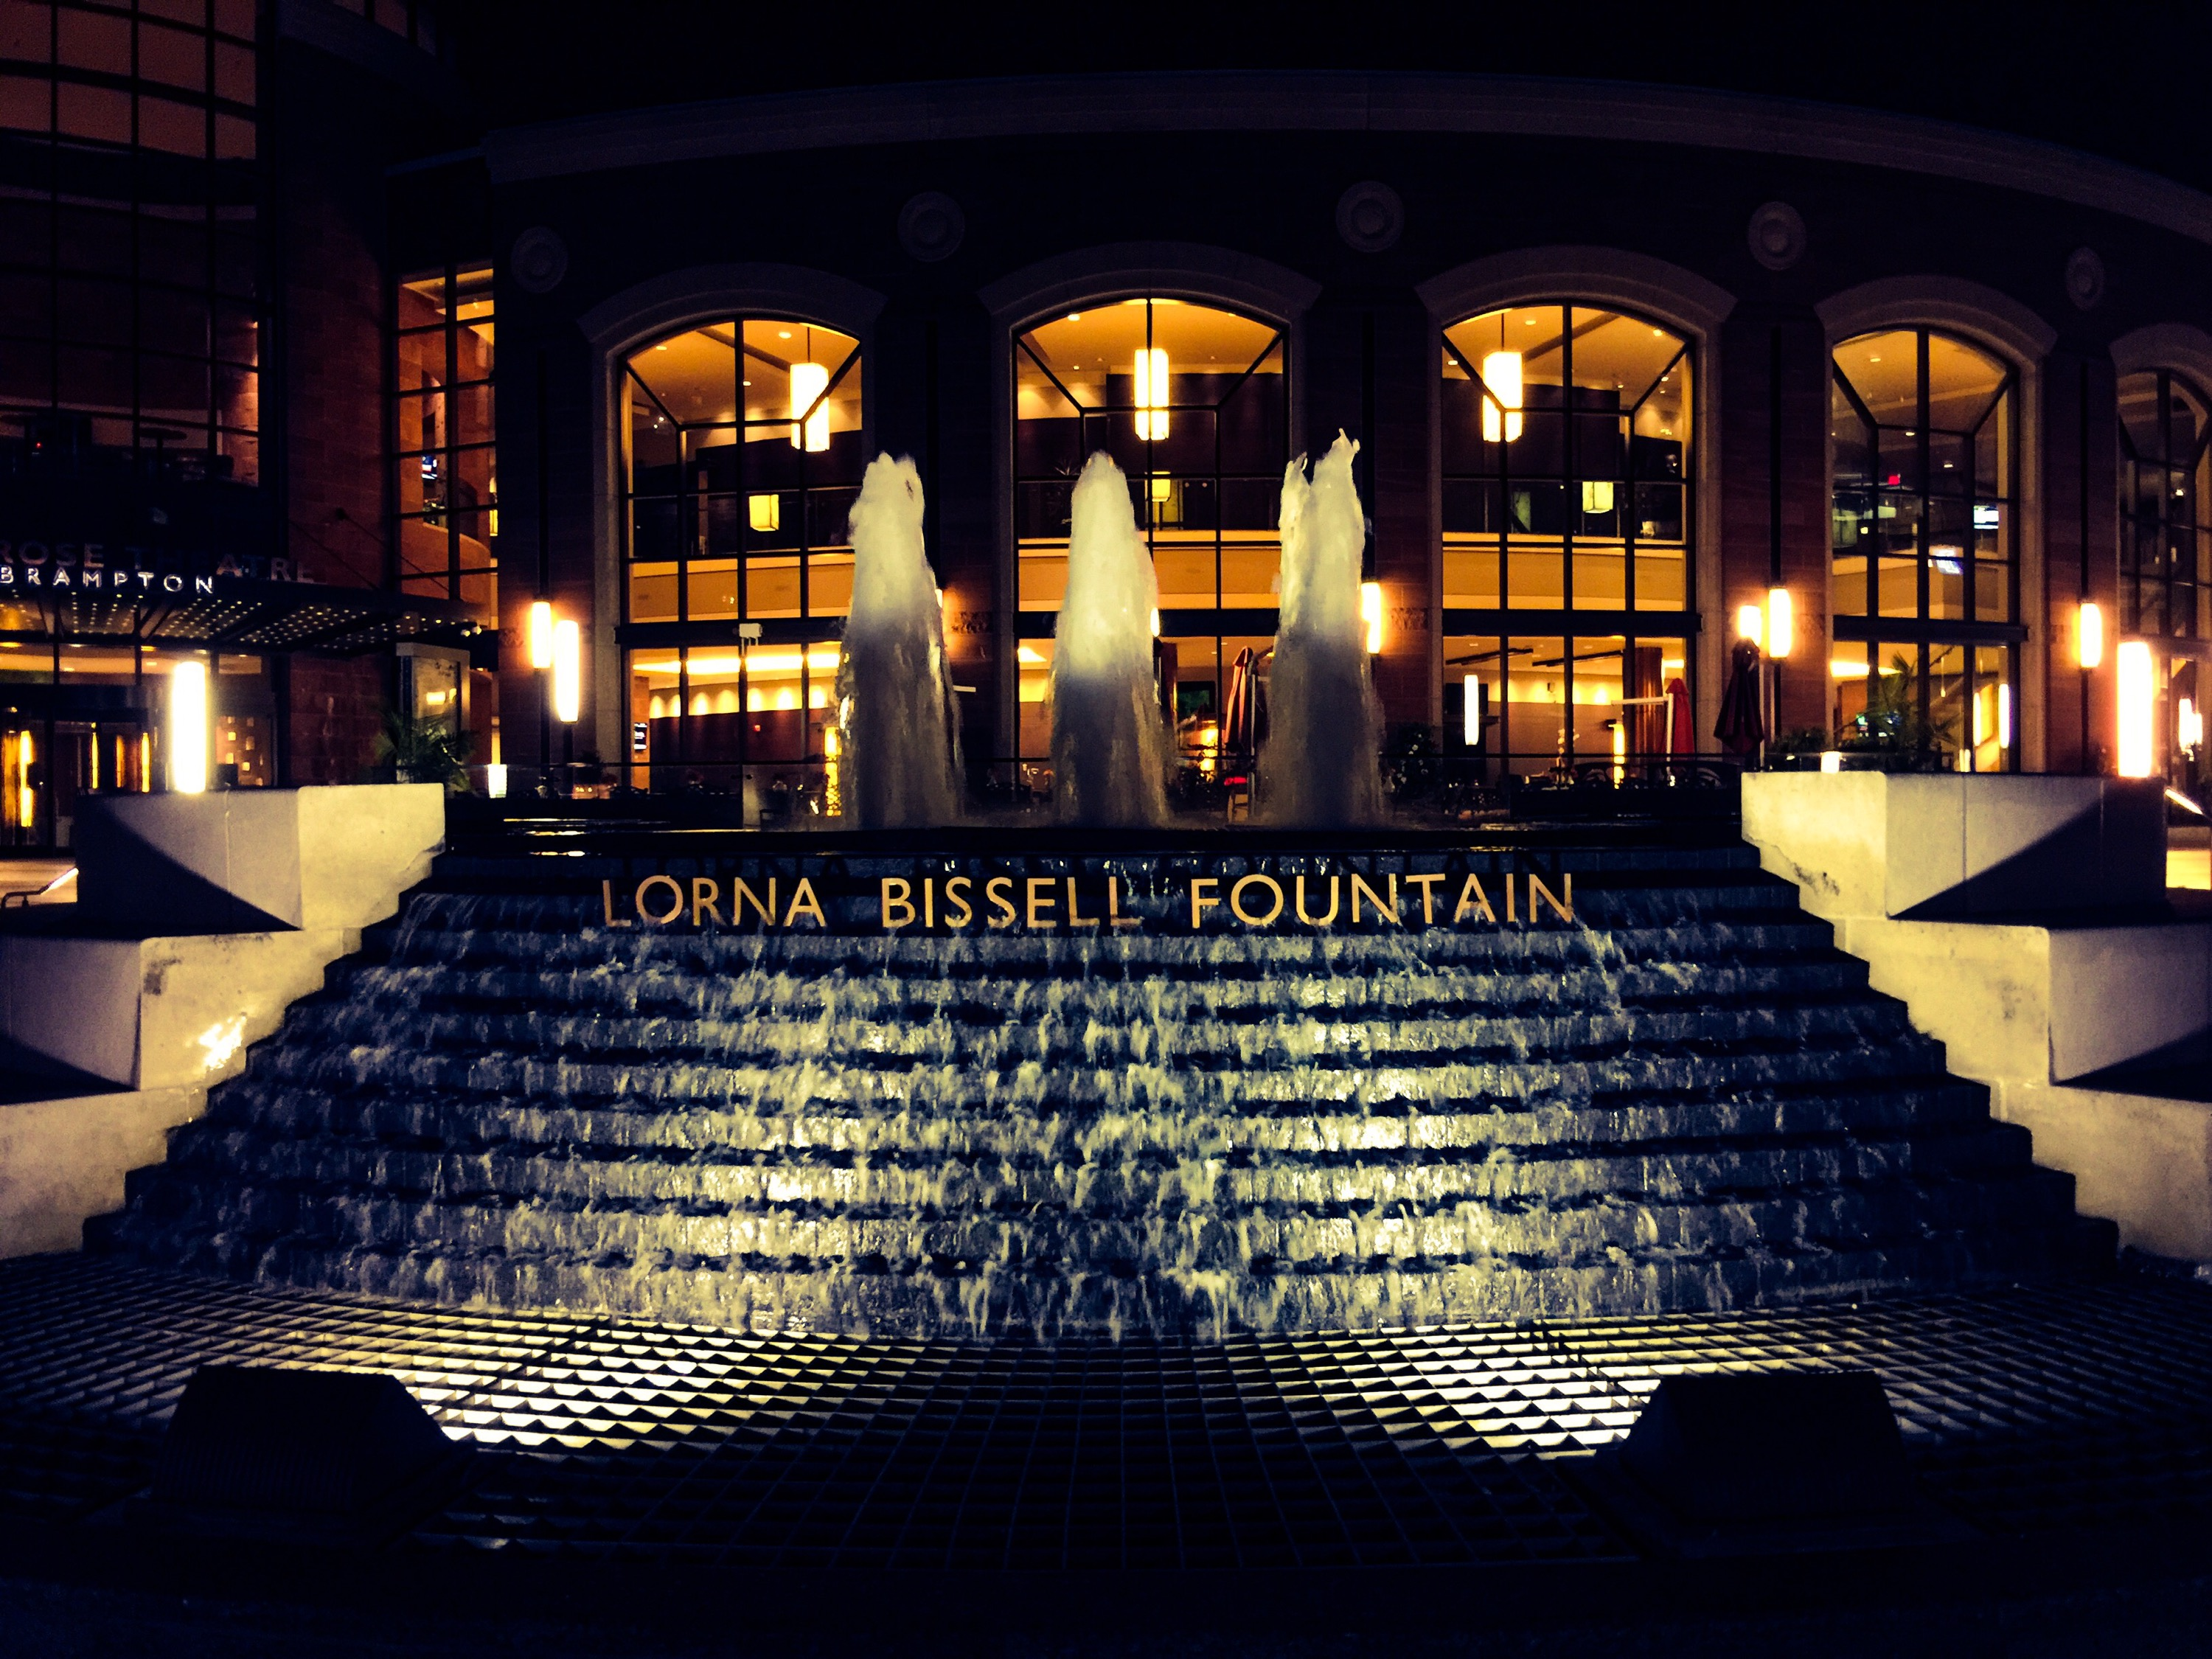 Lorna Bissell Fountain at Rose Theatre Square